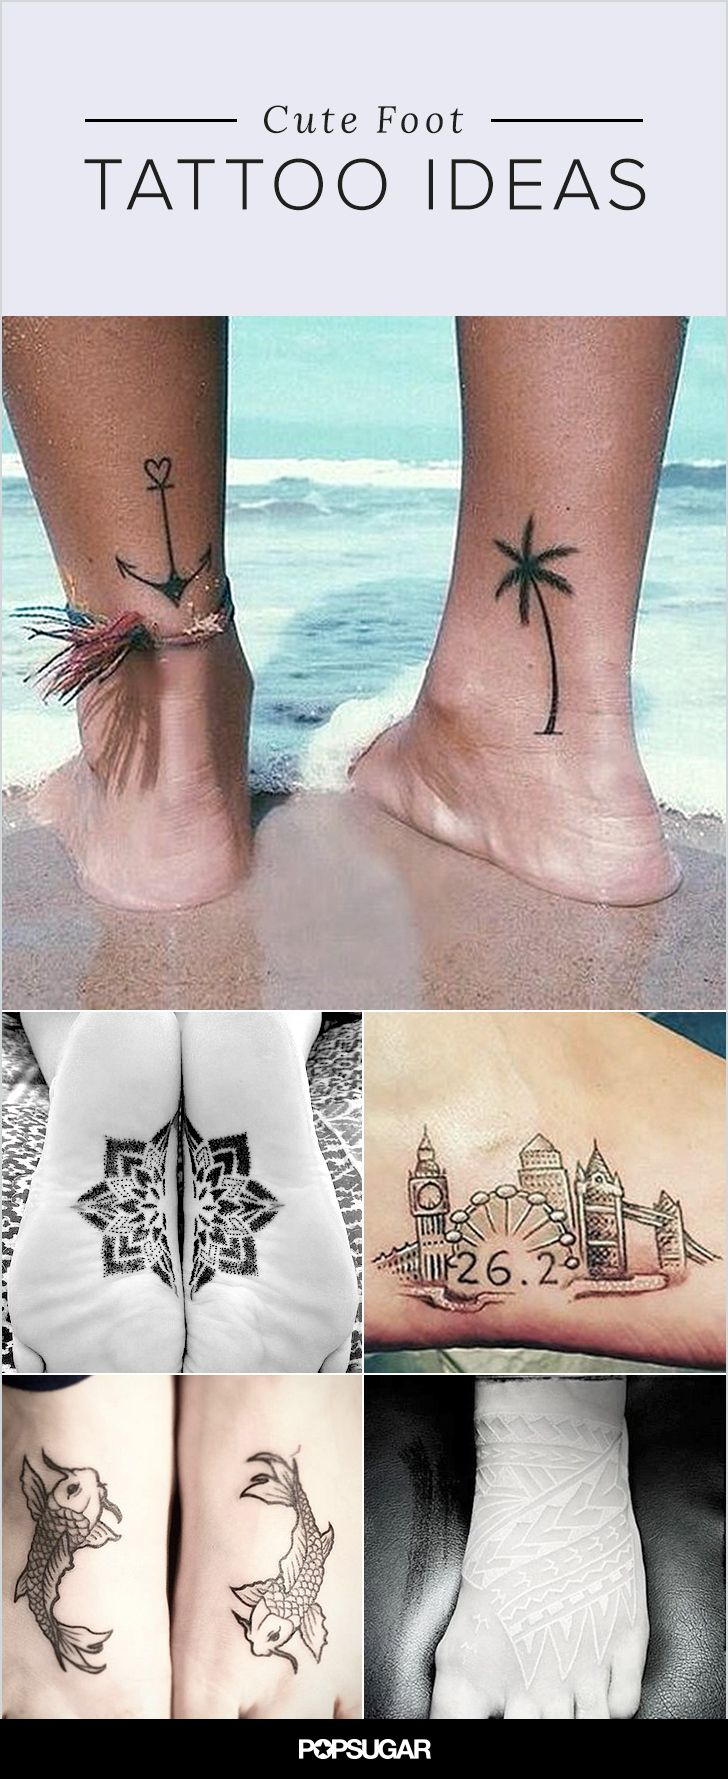 How sore is a tattoo on your foot